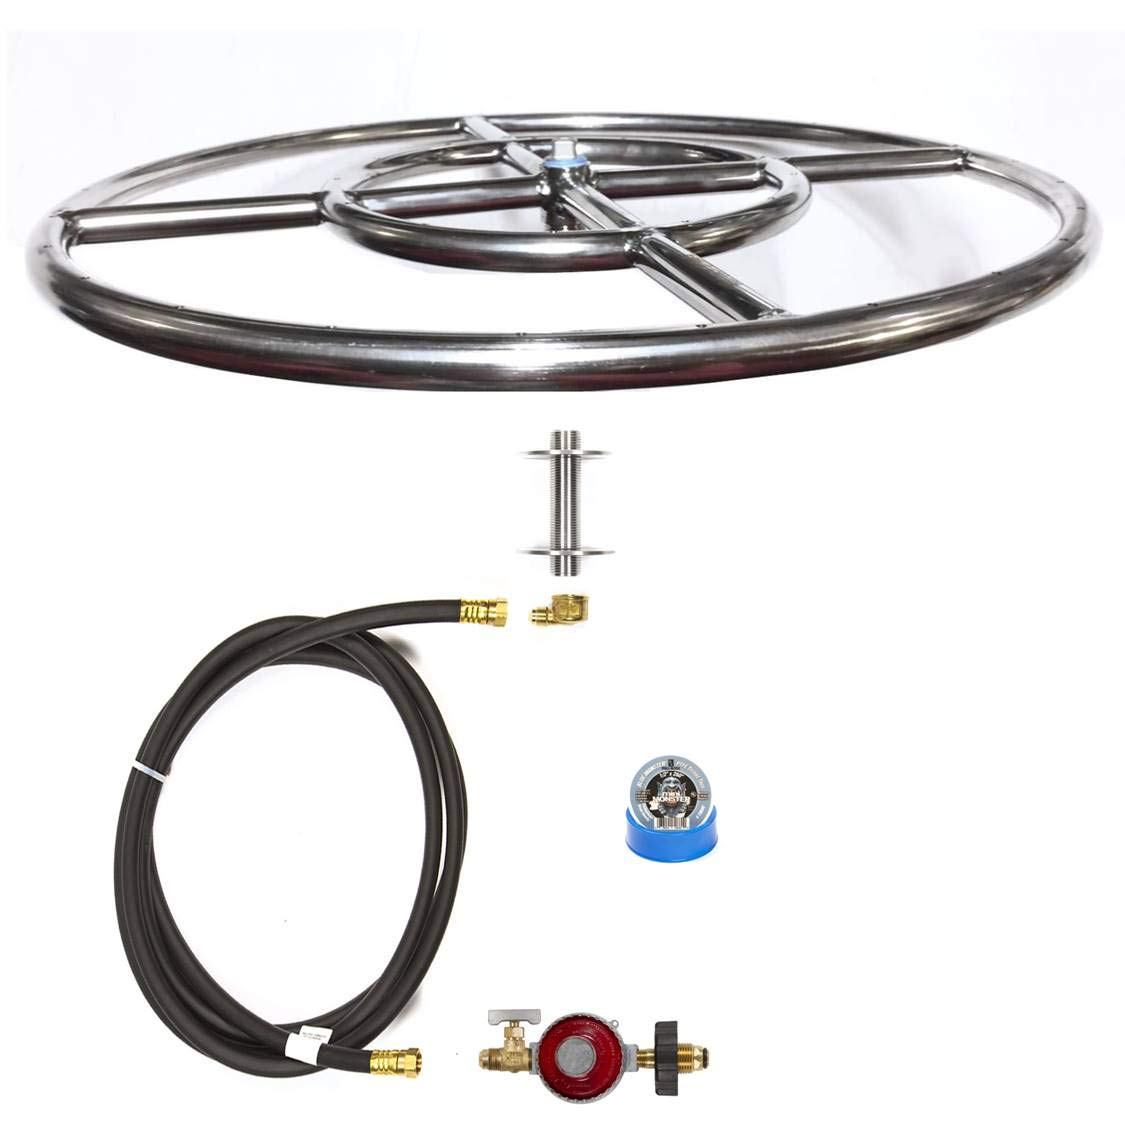 FR12CK: Complete LP Basic Fire Pit Kit & 12'' Lifetime Warranted 316 Stainless Double Ring Burner by EasyFirePits